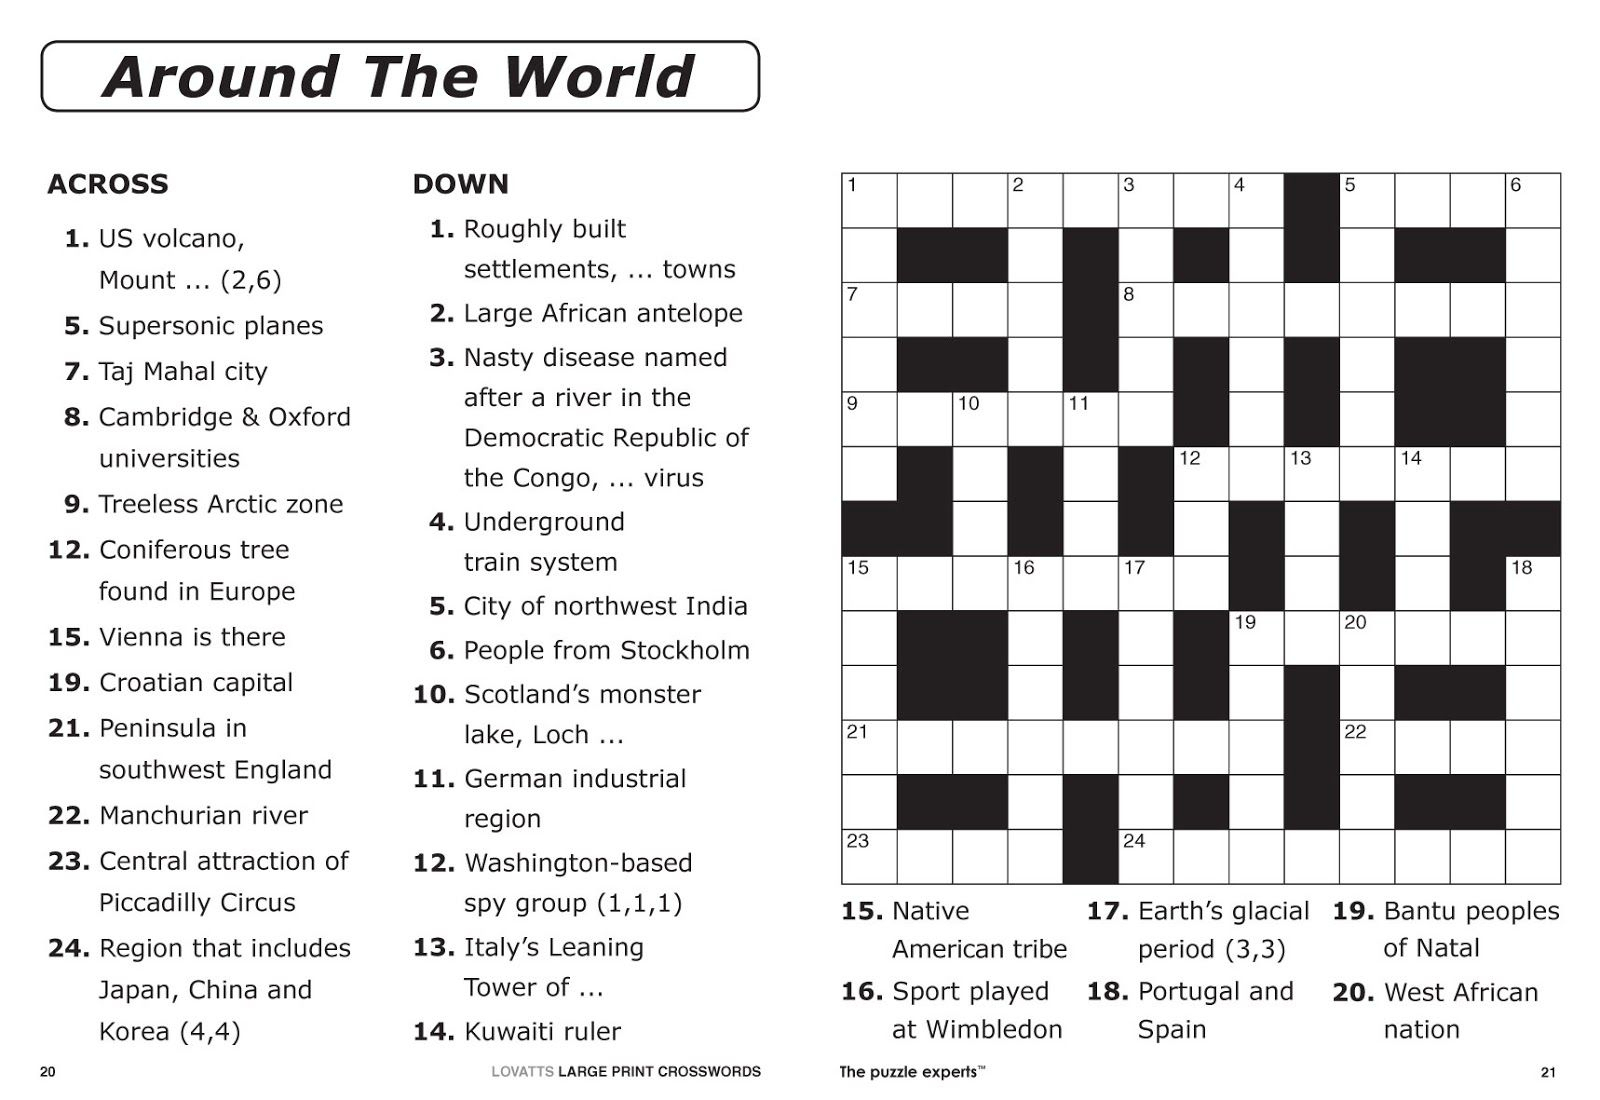 Easy Printable Crossword Puzzles | Elder Care & Dementia Care - Free - Printable Crossword.com